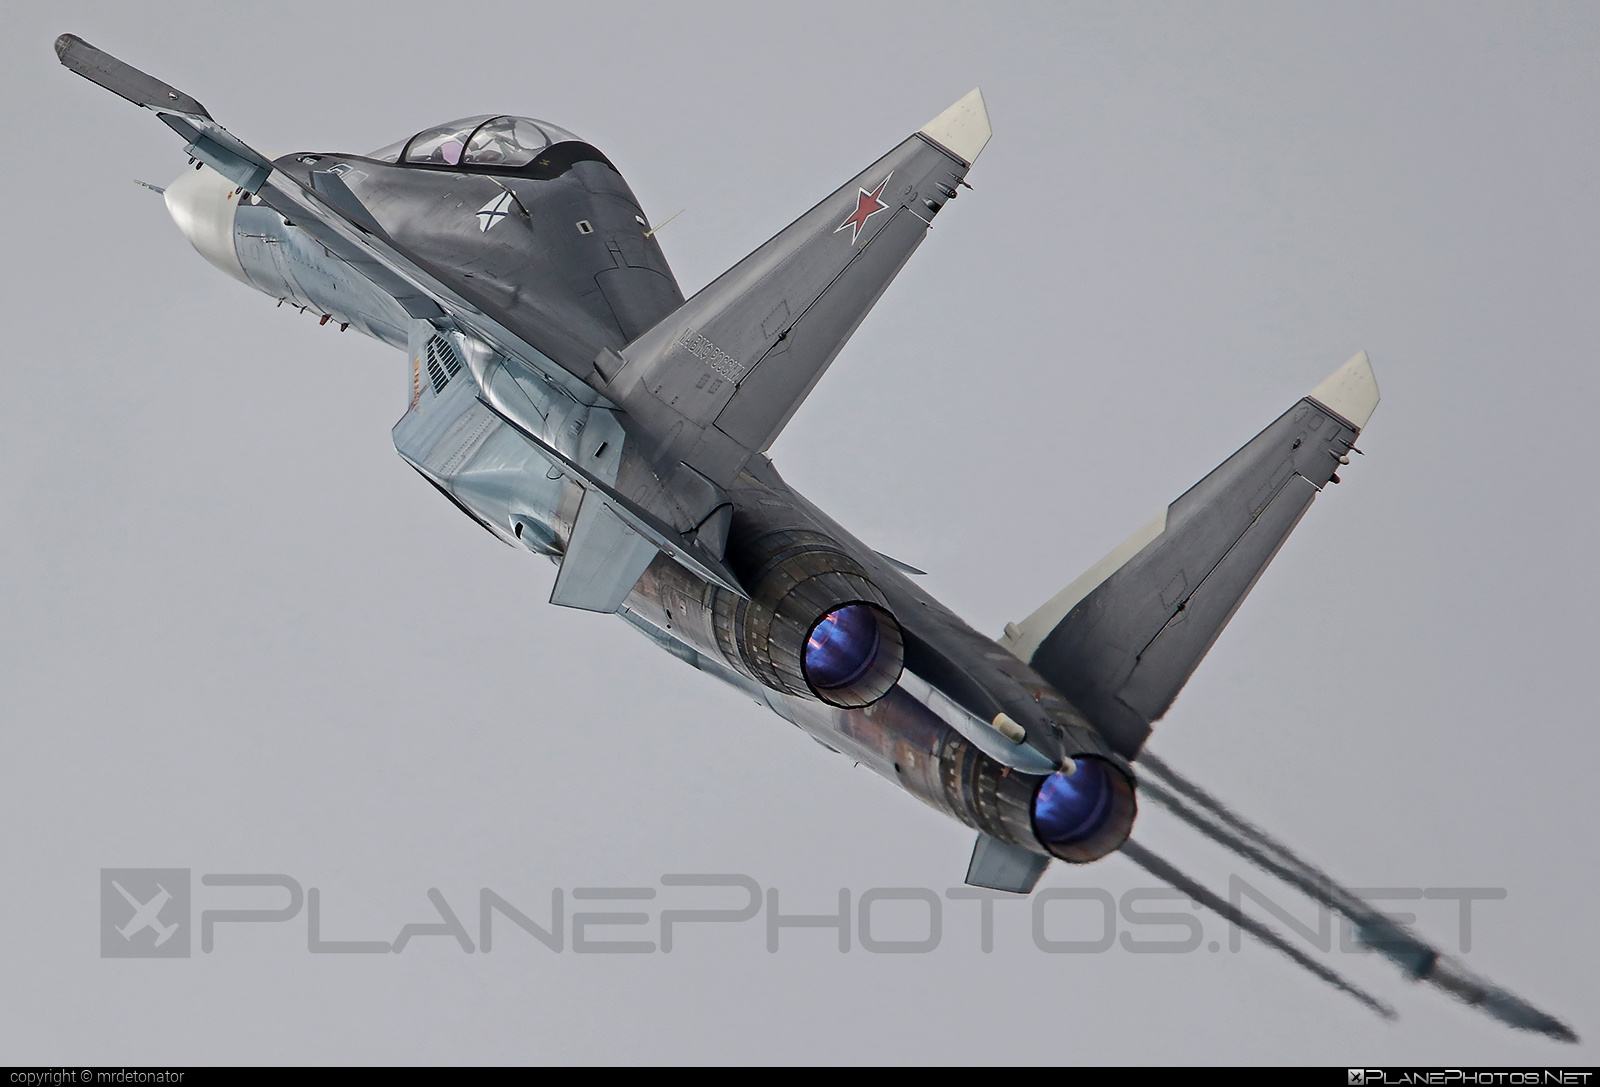 Sukhoi Su-30SM - 38 operated by Voyenno-vozdushnye sily Rossii (Russian Air Force) #maks2015 #sukhoi